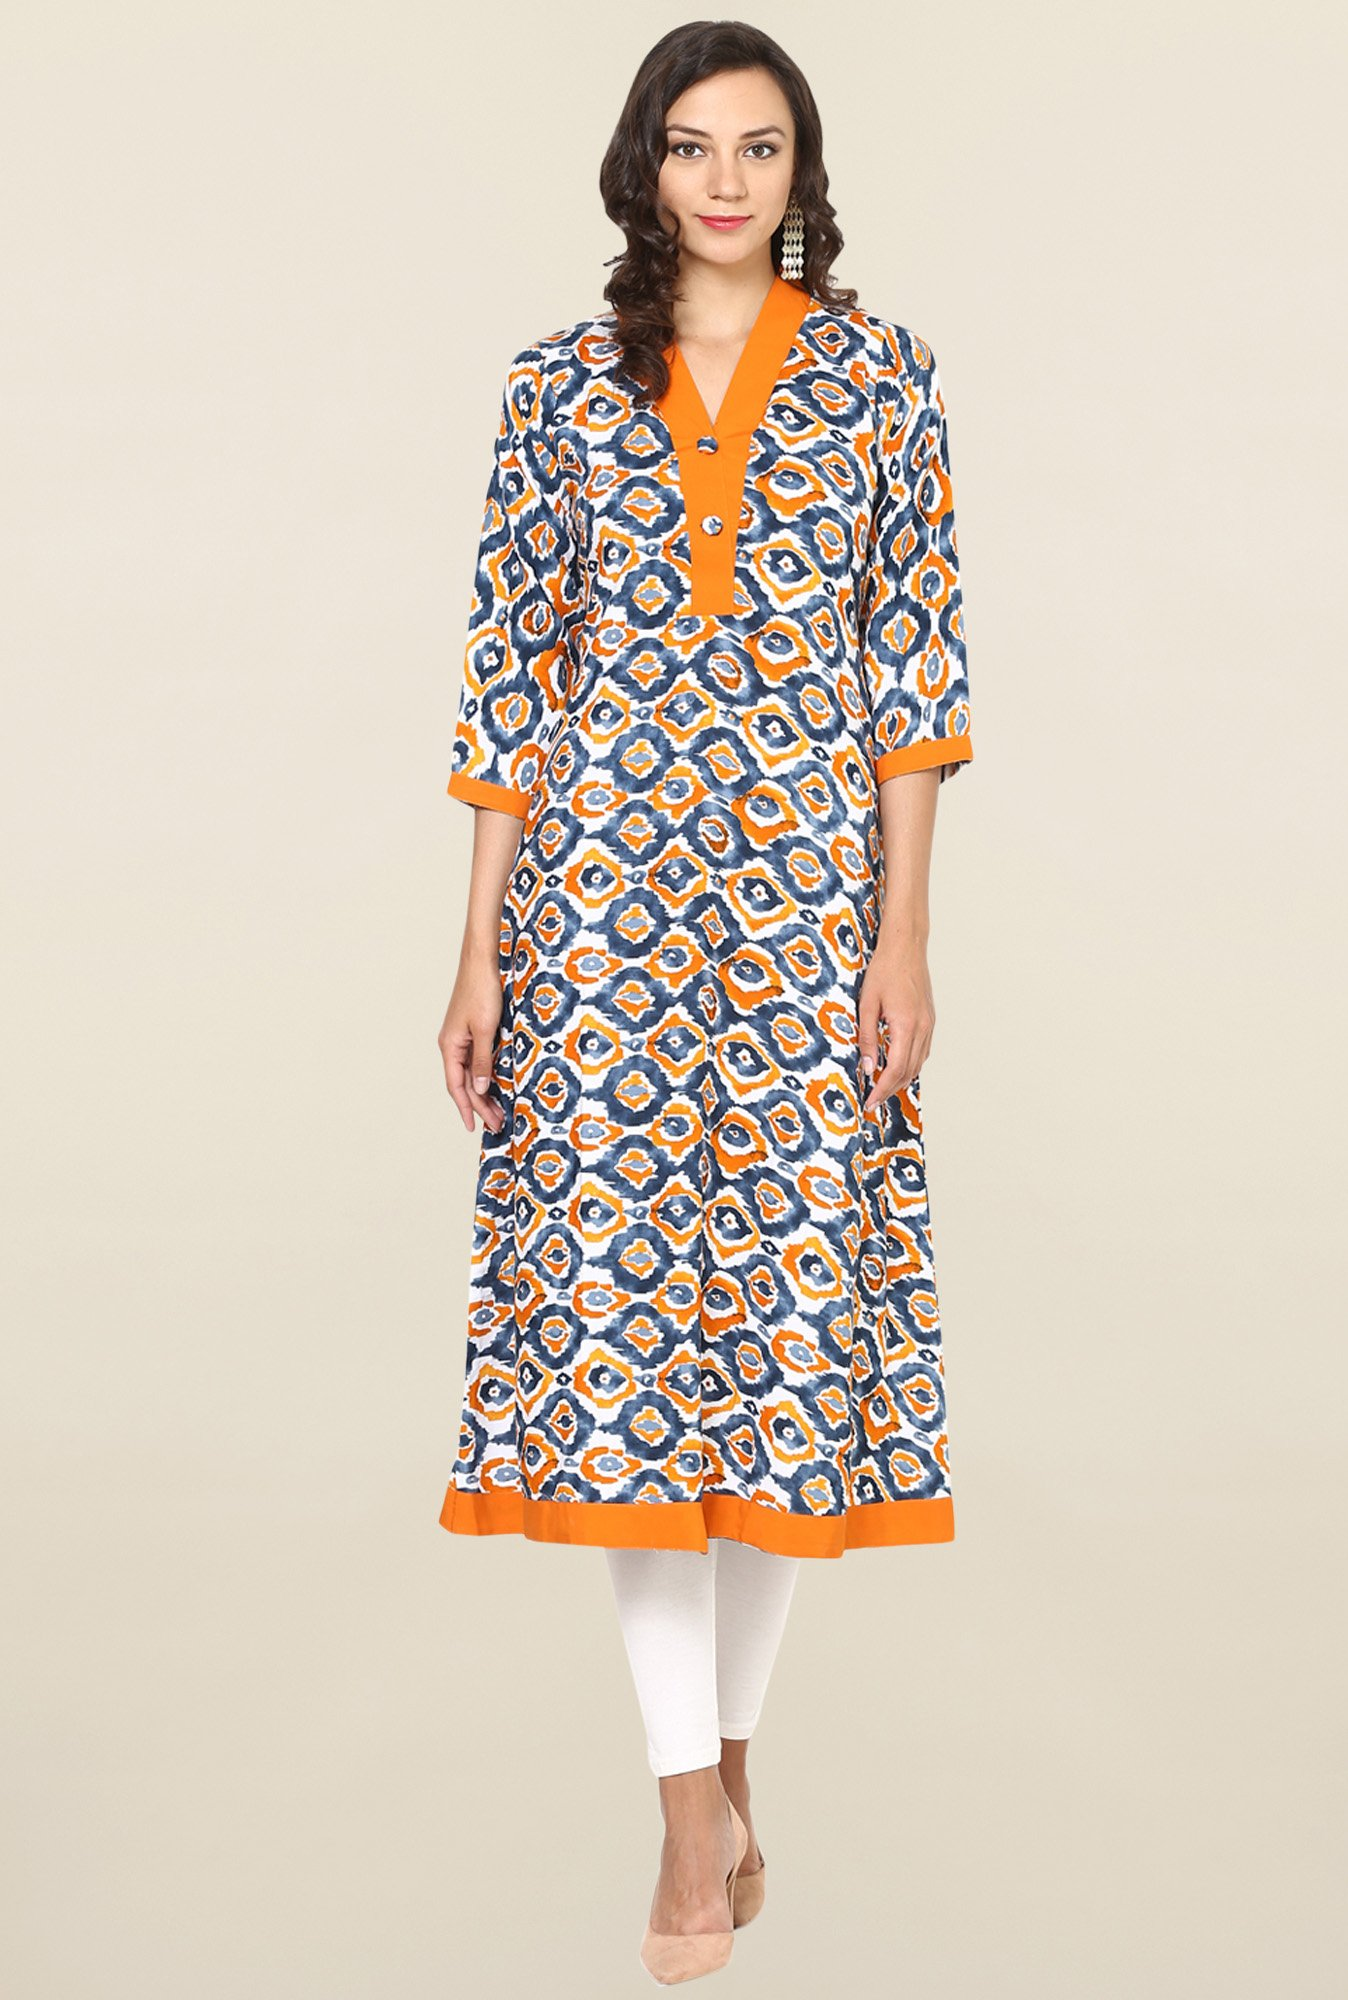 Aujjessa Grey & Orange Printed Rayon A Line Kurta